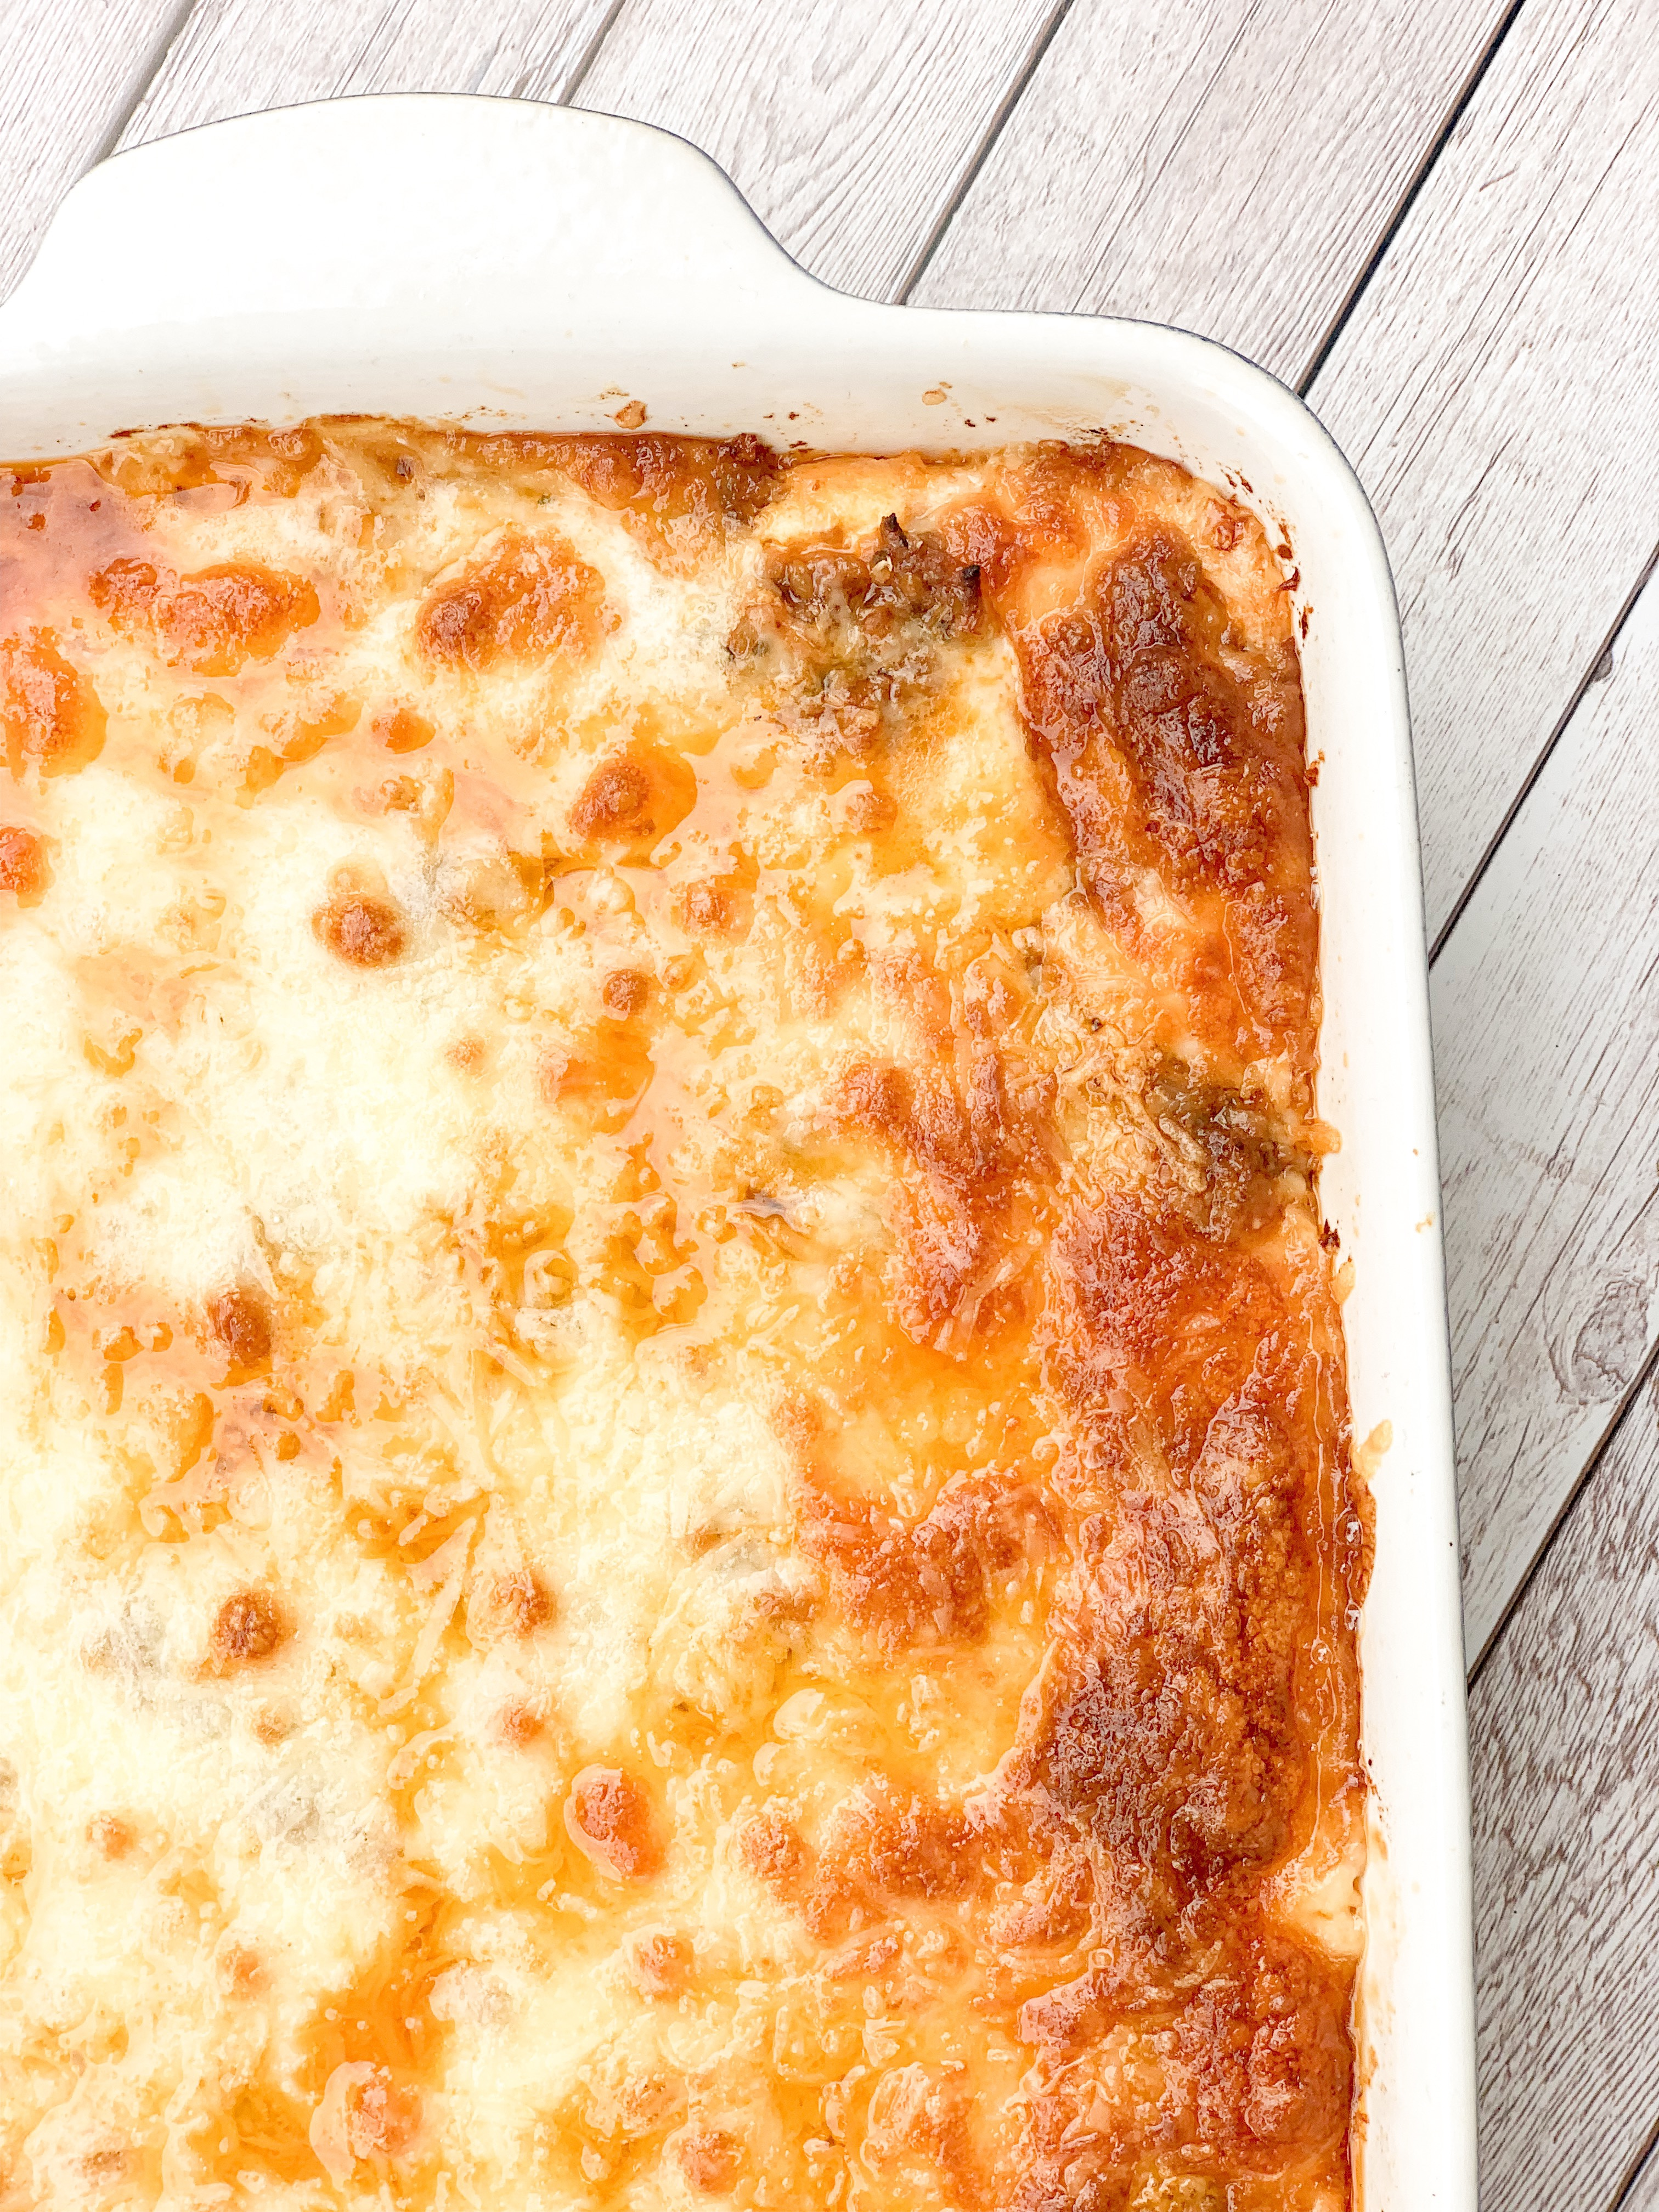 Picture of baked keto lasagna with golden brown top of melted baked cheese